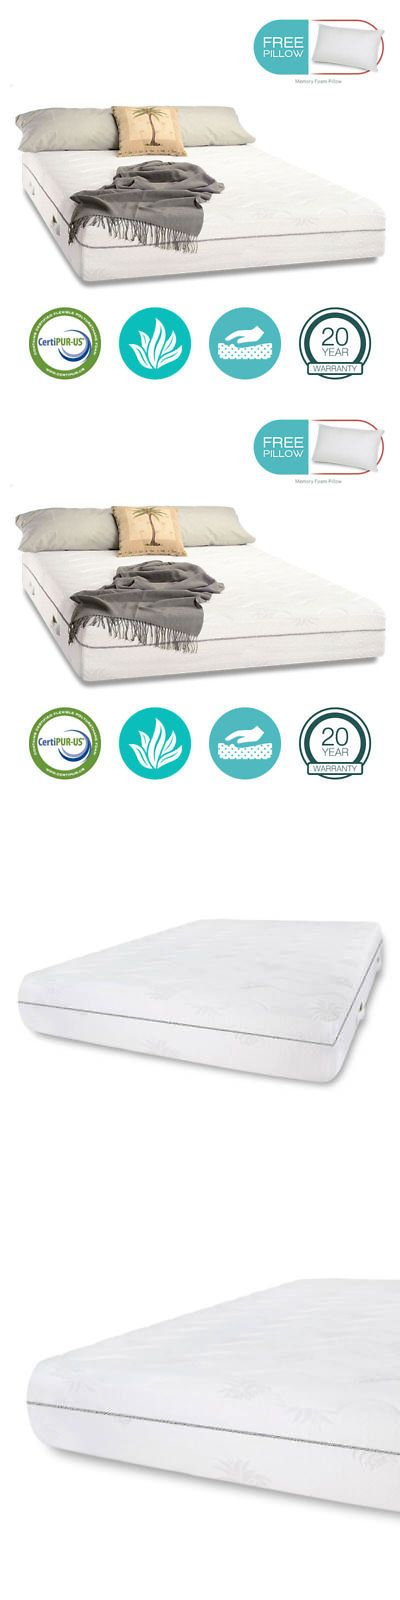 Mattresses 131588: 11 Twin Xl Cool Aloe Vera Gel Infused Memory Foam Mattress Free Pillow - Sale -> BUY IT NOW ONLY: $189.99 on eBay!